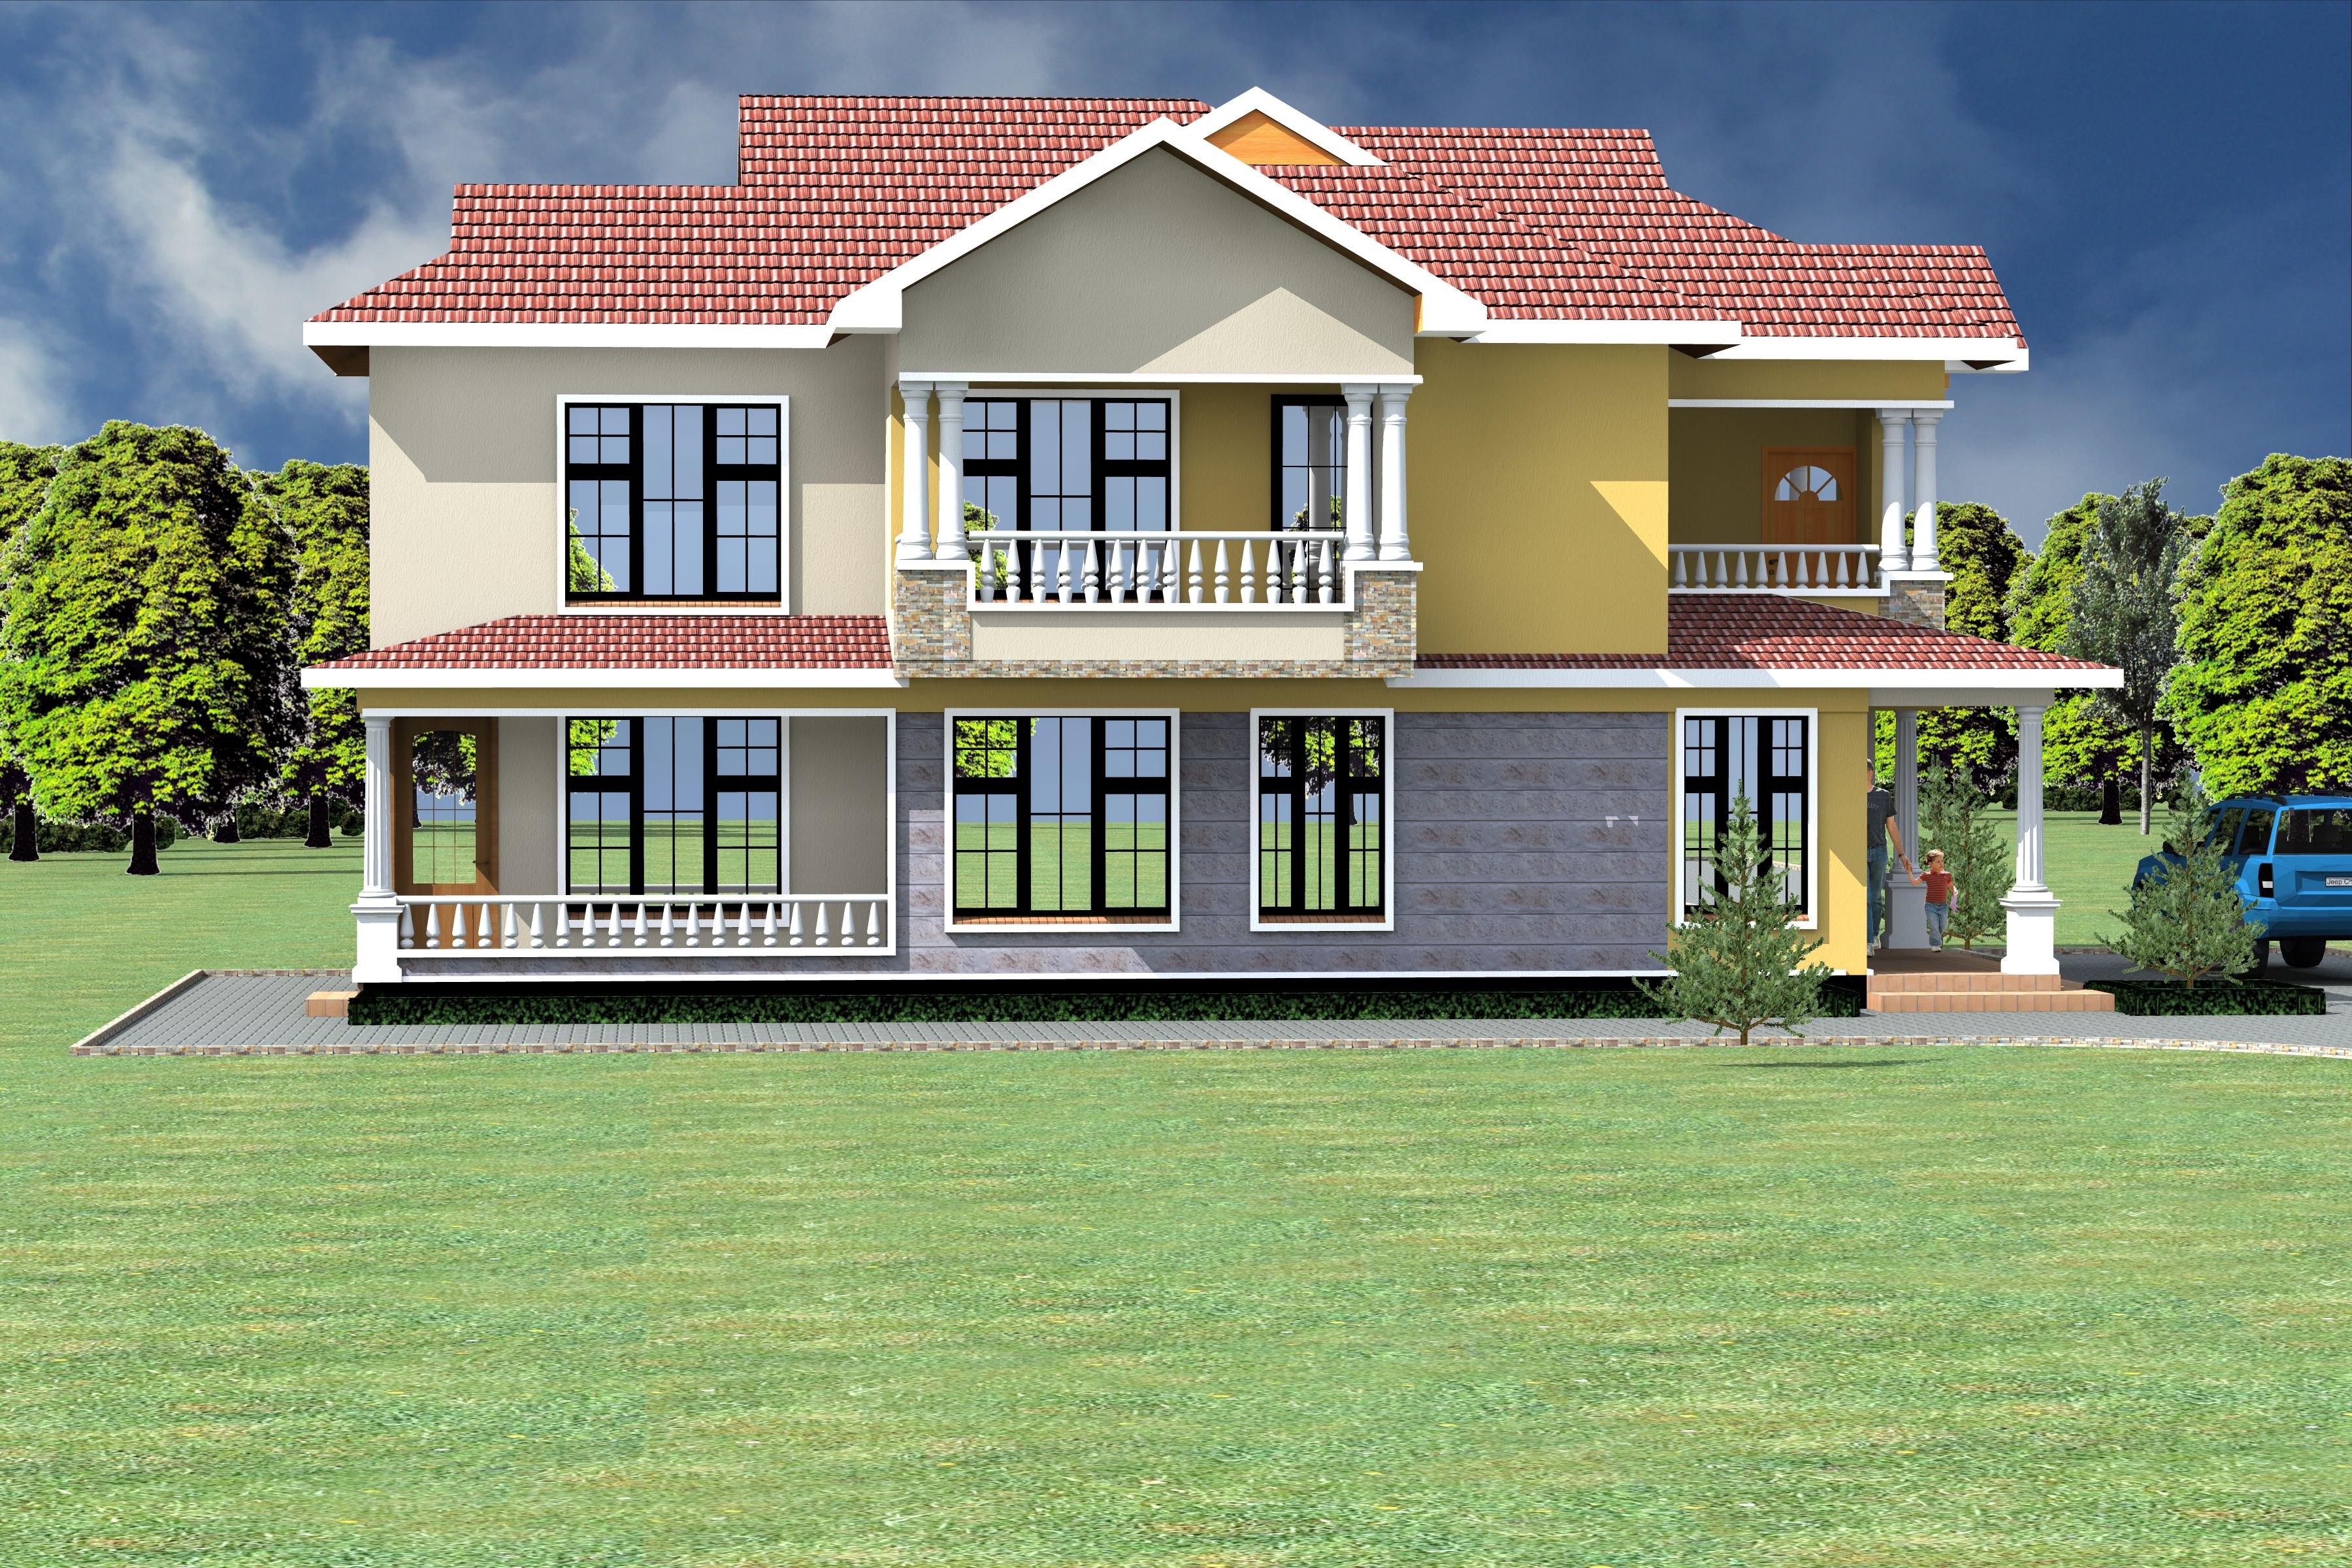 4 Bedroom Design 1032 A In 2021 House Projects Architecture Architectural House Plans Modern House Plans